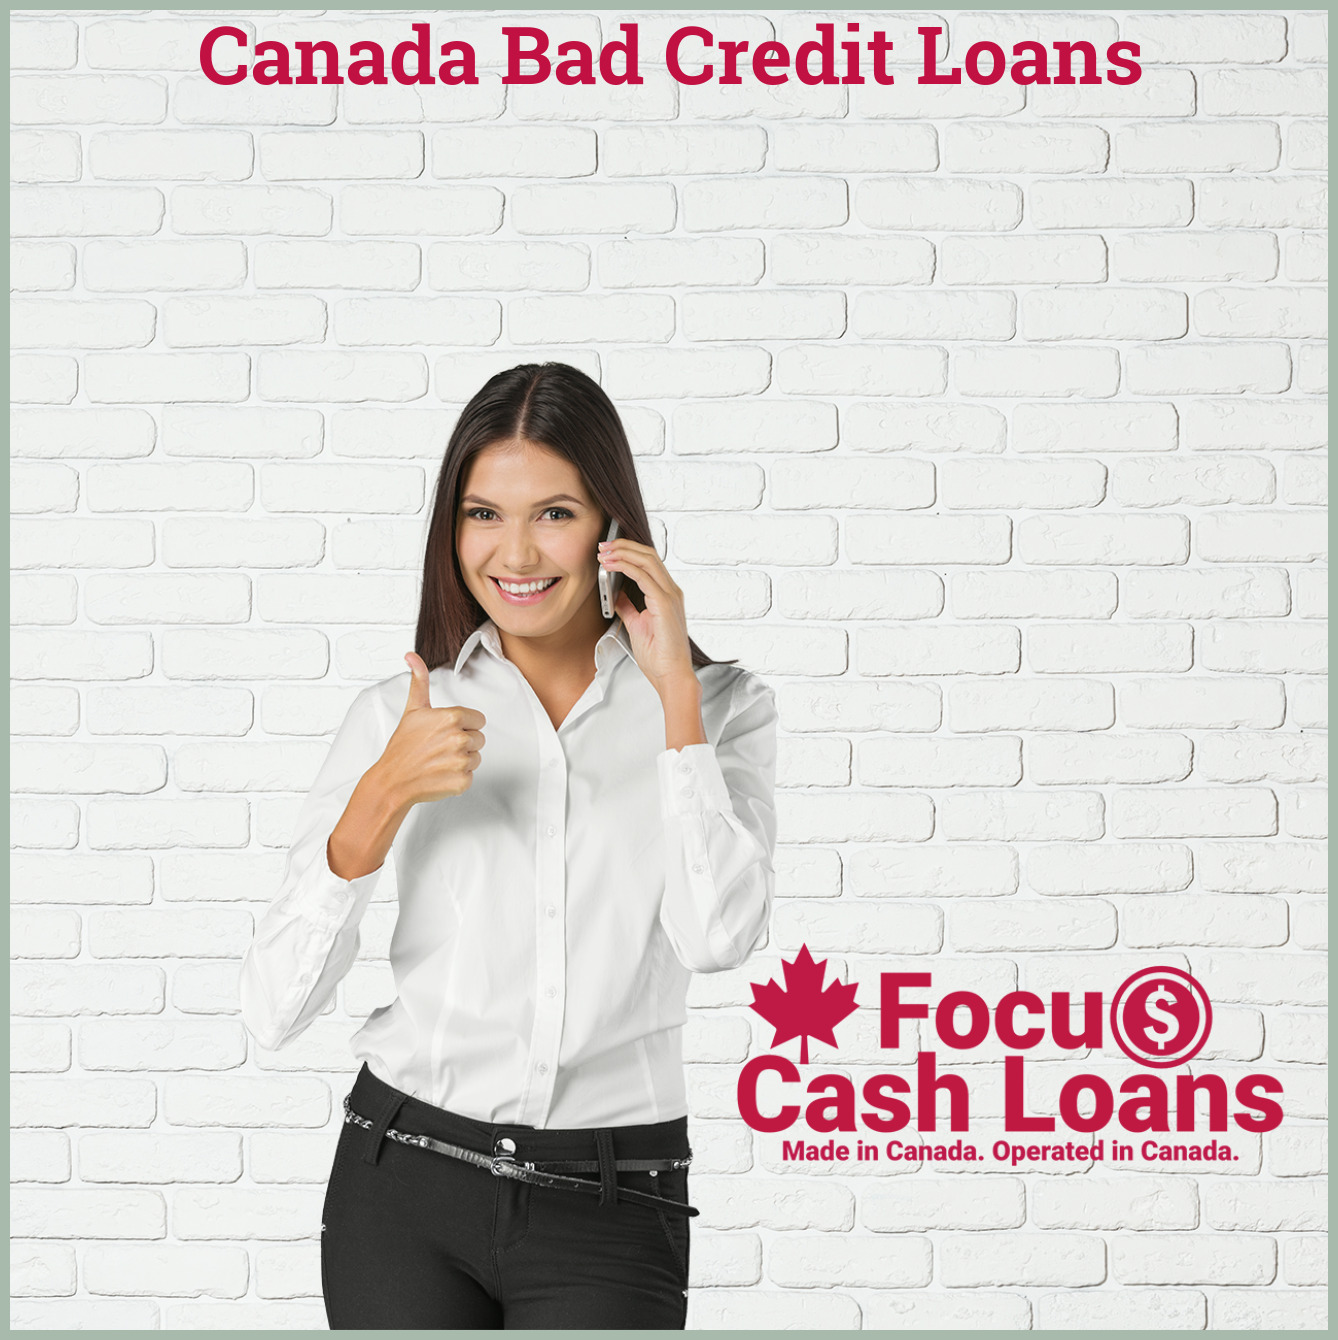 Payday Cash Advance Loans - Get Cash Instantly!